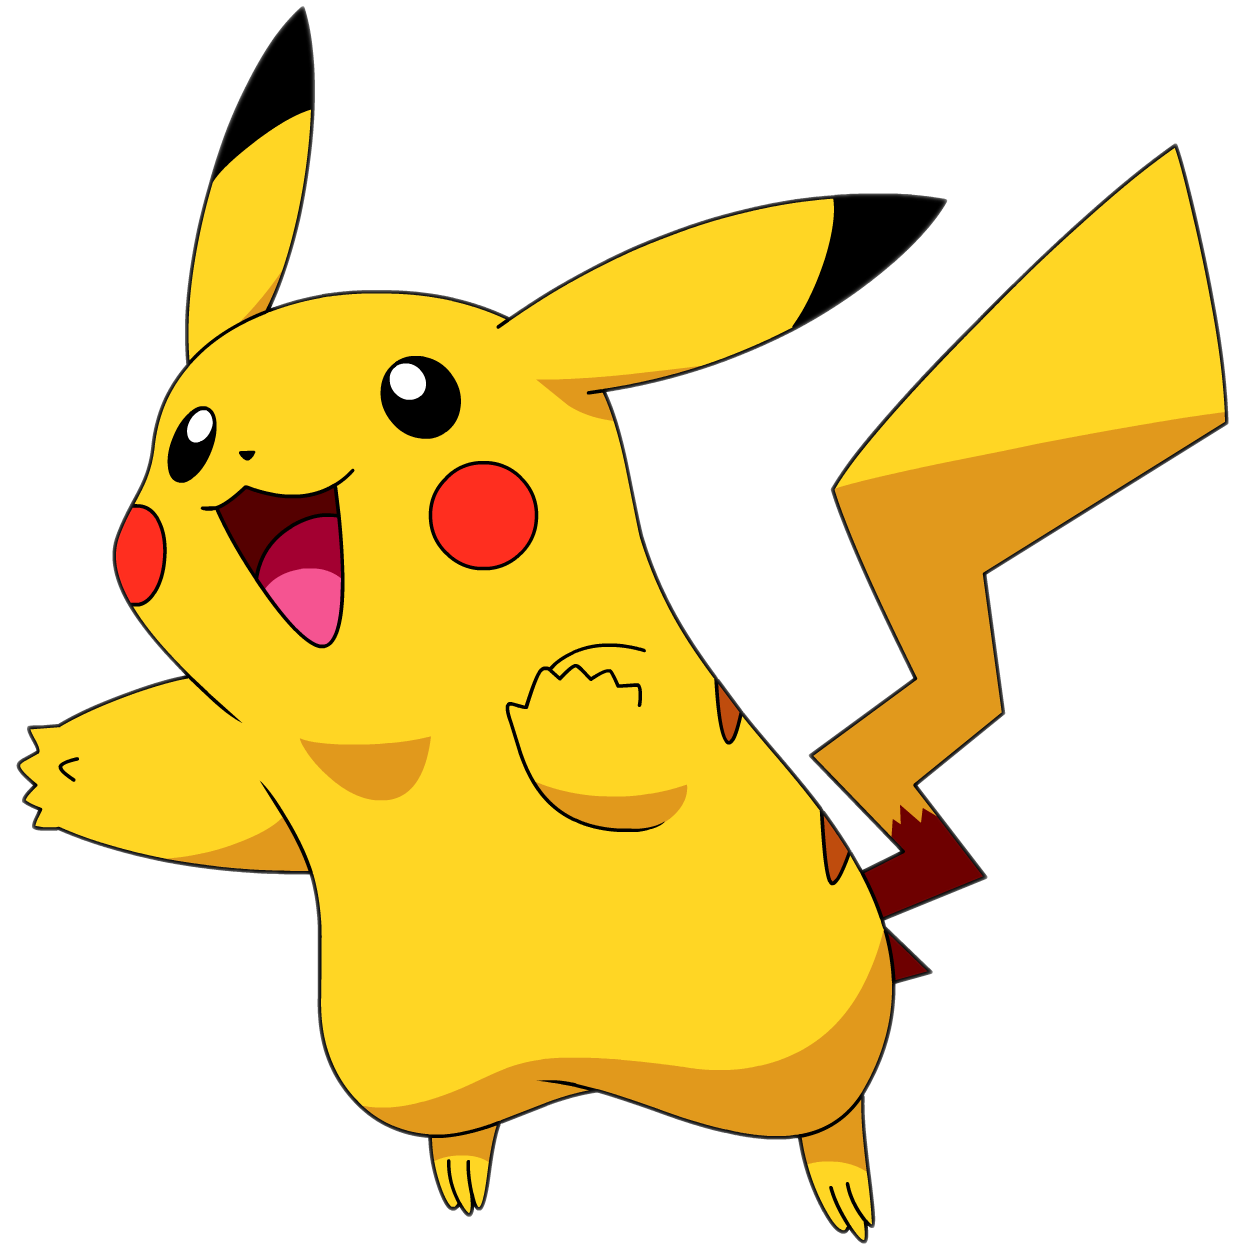 Cartoon Characters Png : Cartoon characters pokemon png pack